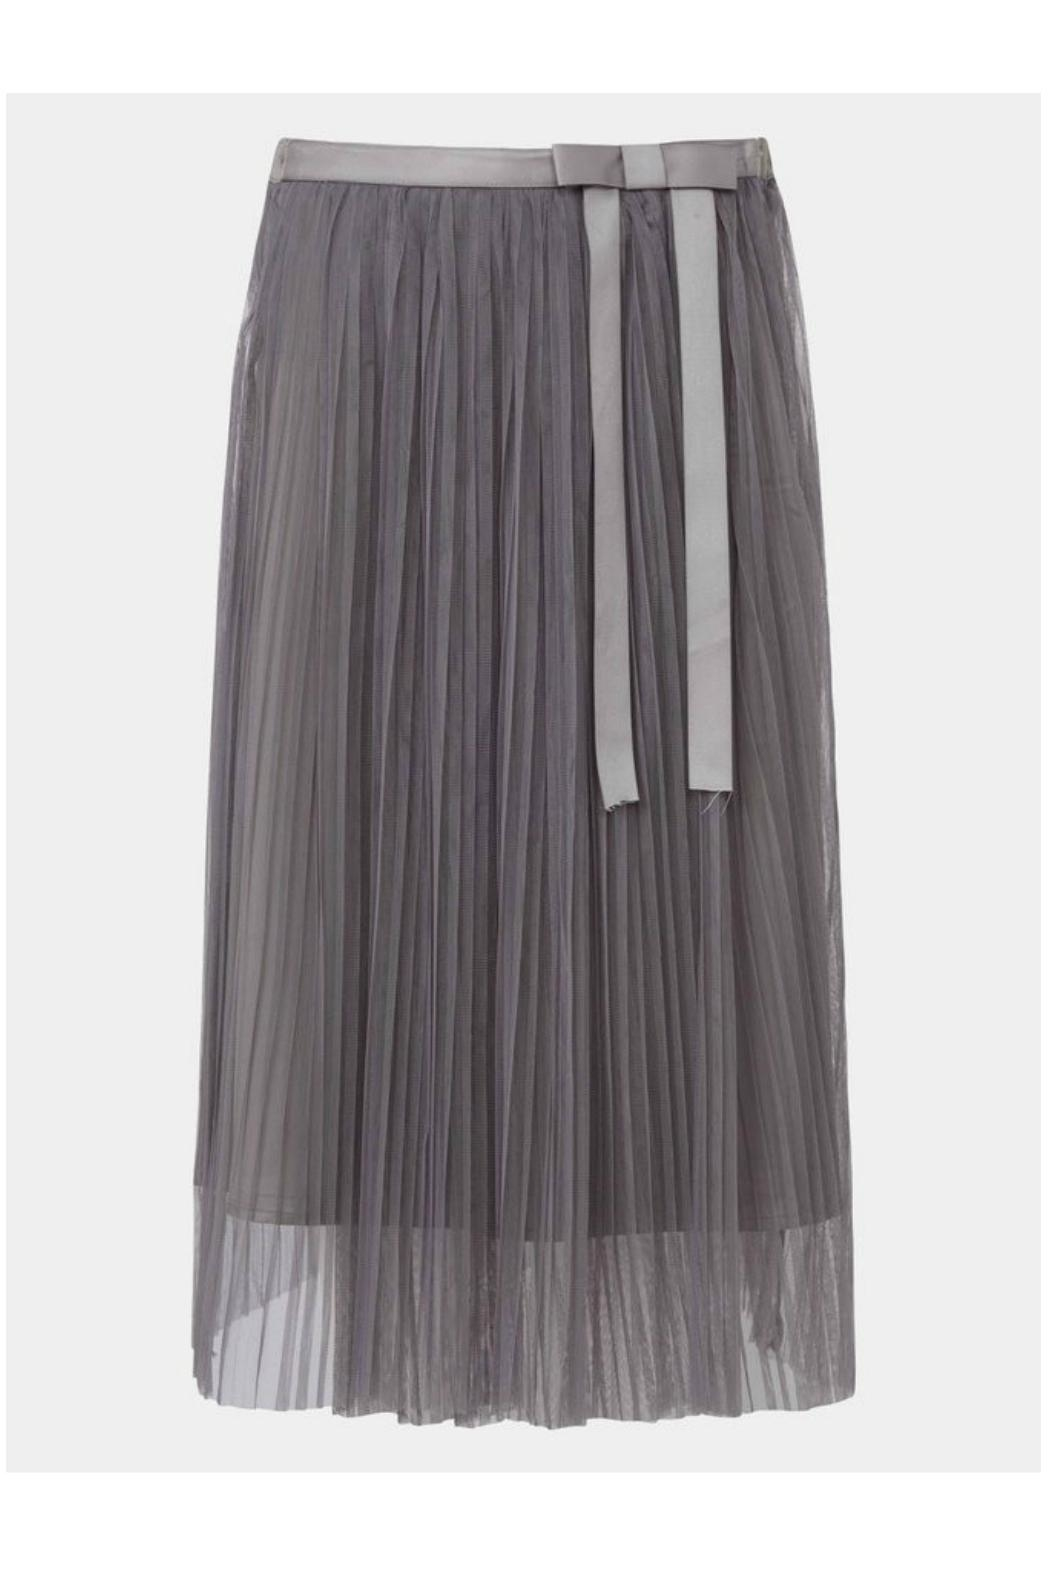 Darling Roxy Grey Skirt - Front Cropped Image